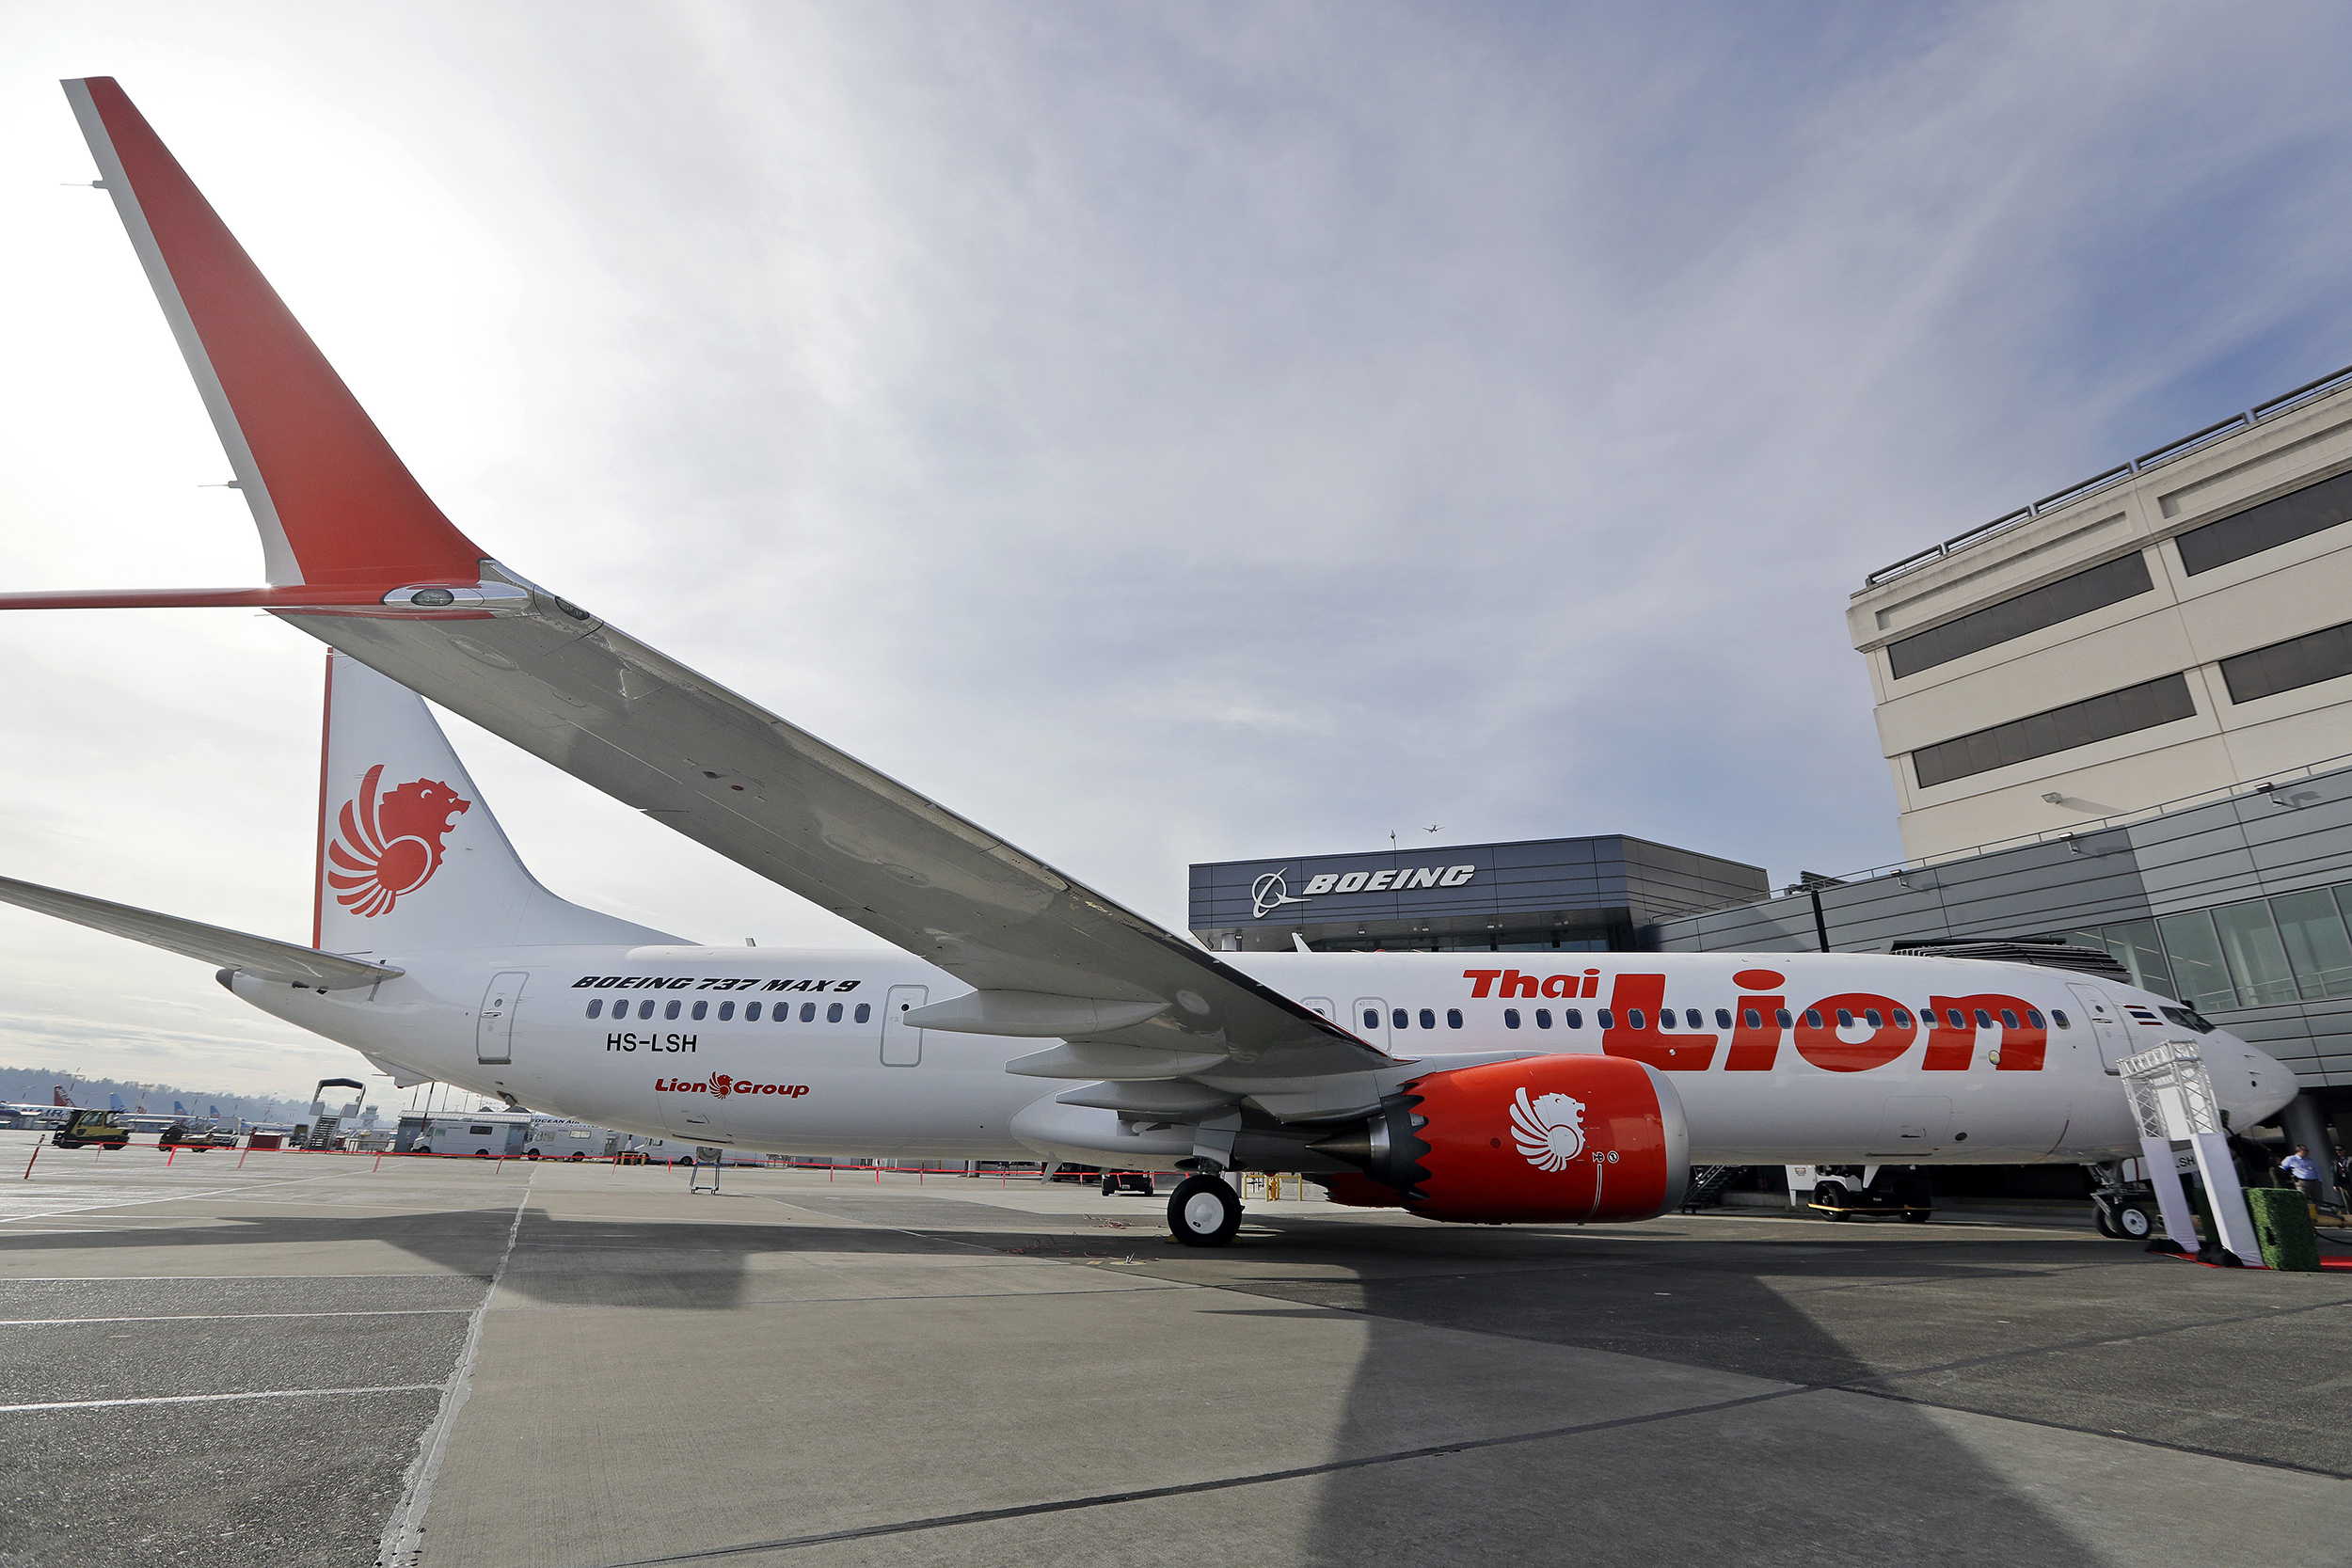 boeing issues safety bulletin over angle of attack sensors on 737